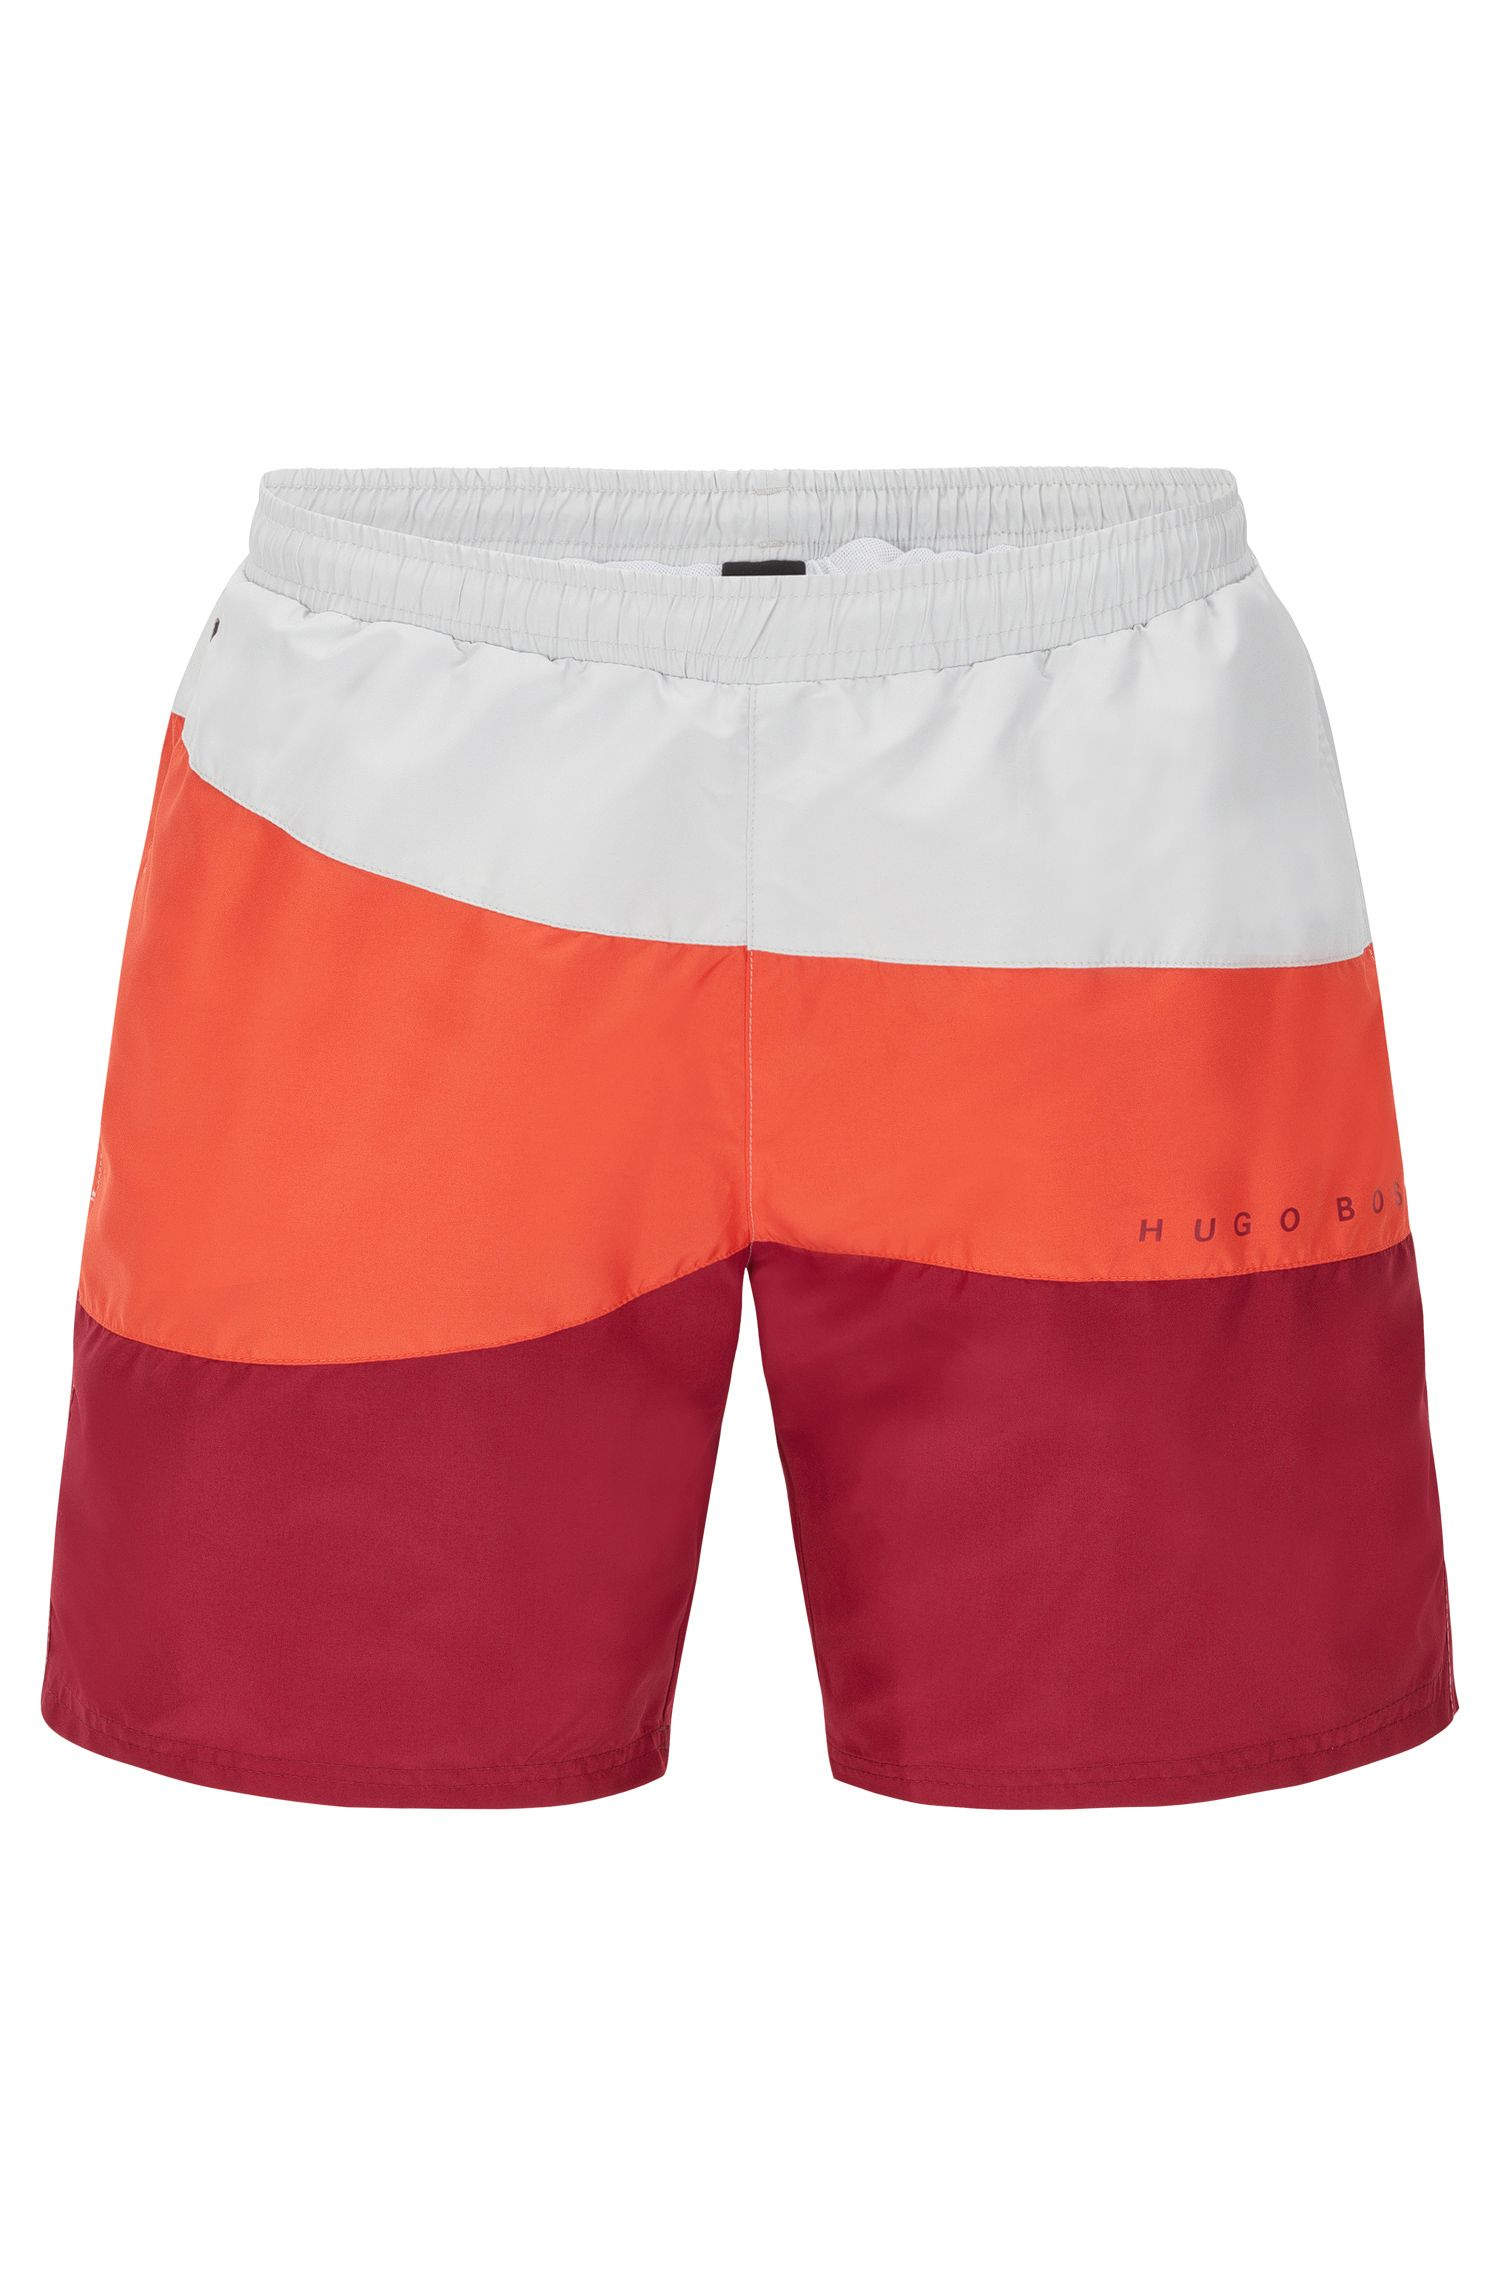 'Butterflyfish' | Quick Dry Swim Trunks